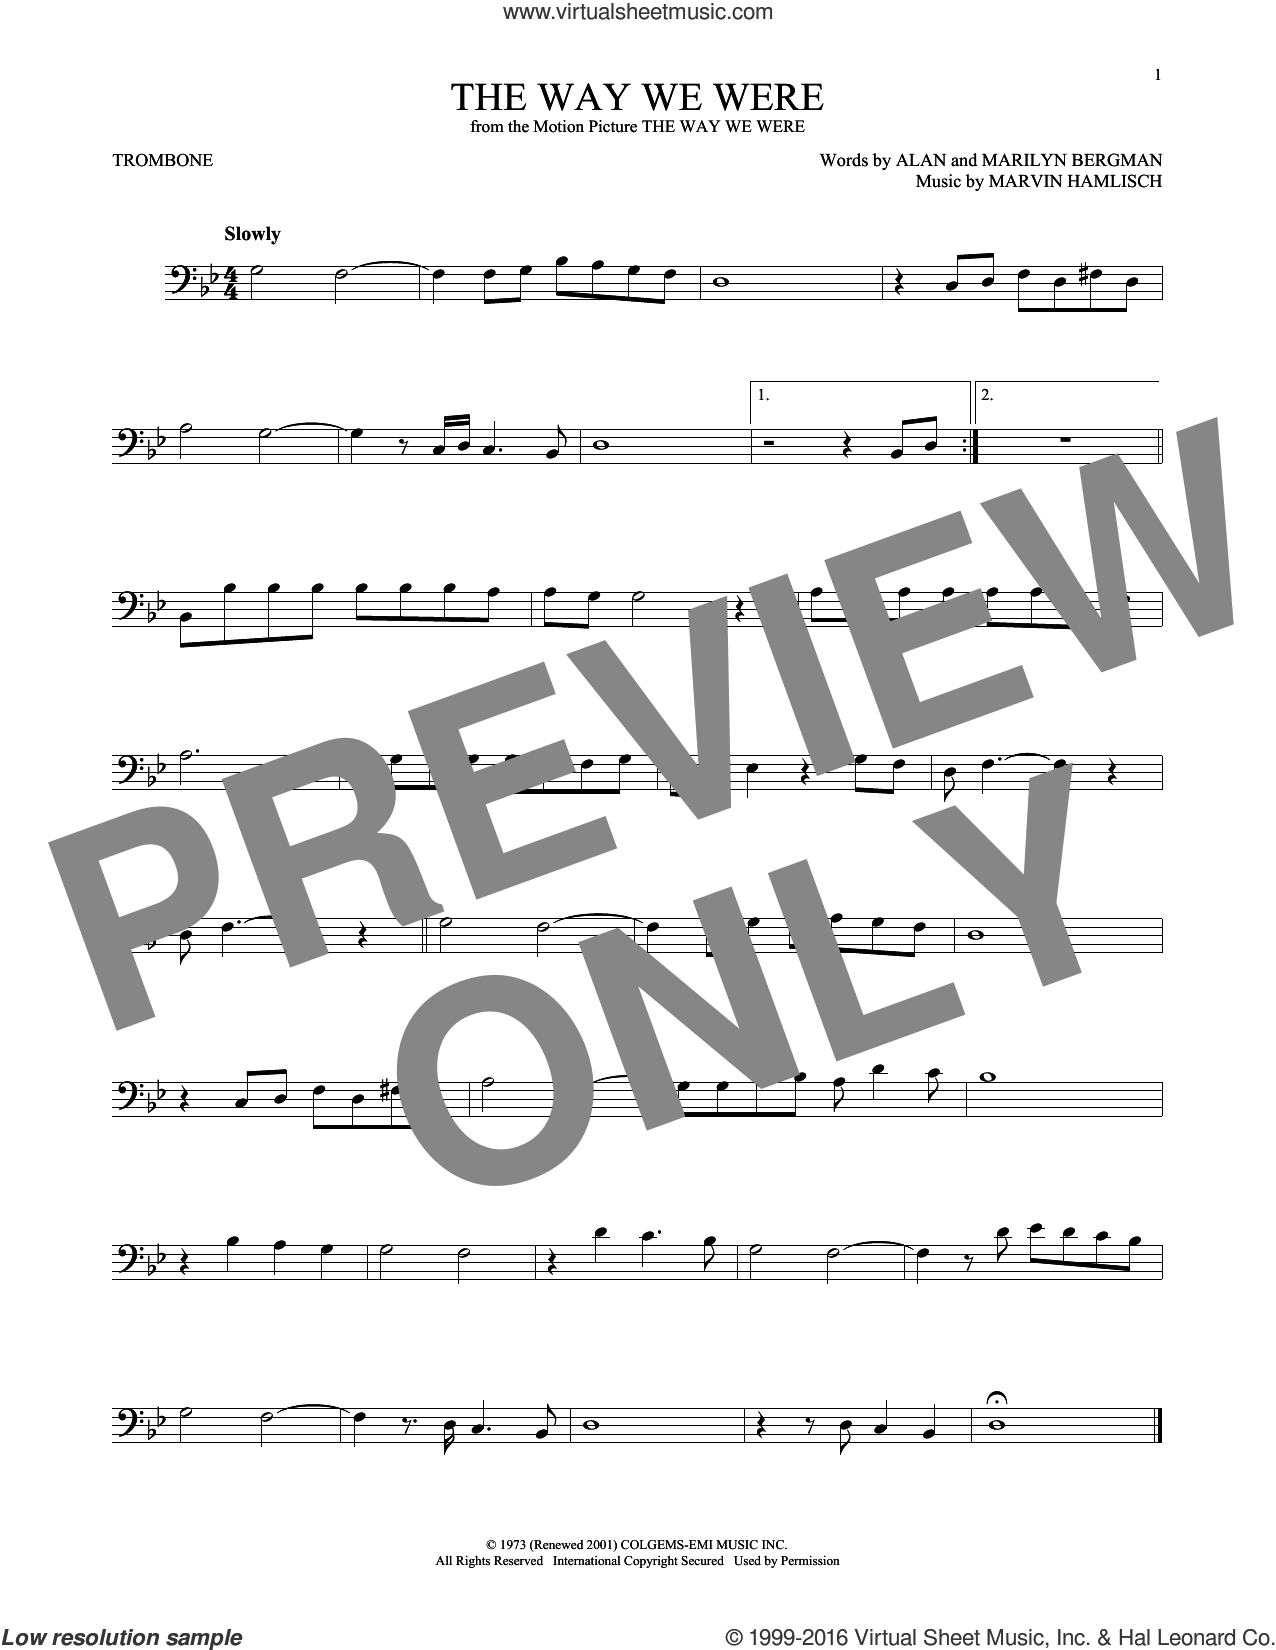 The Way We Were sheet music for trombone solo by Barbra Streisand, Alan Bergman, Marilyn Bergman and Marvin Hamlisch, intermediate trombone. Score Image Preview.